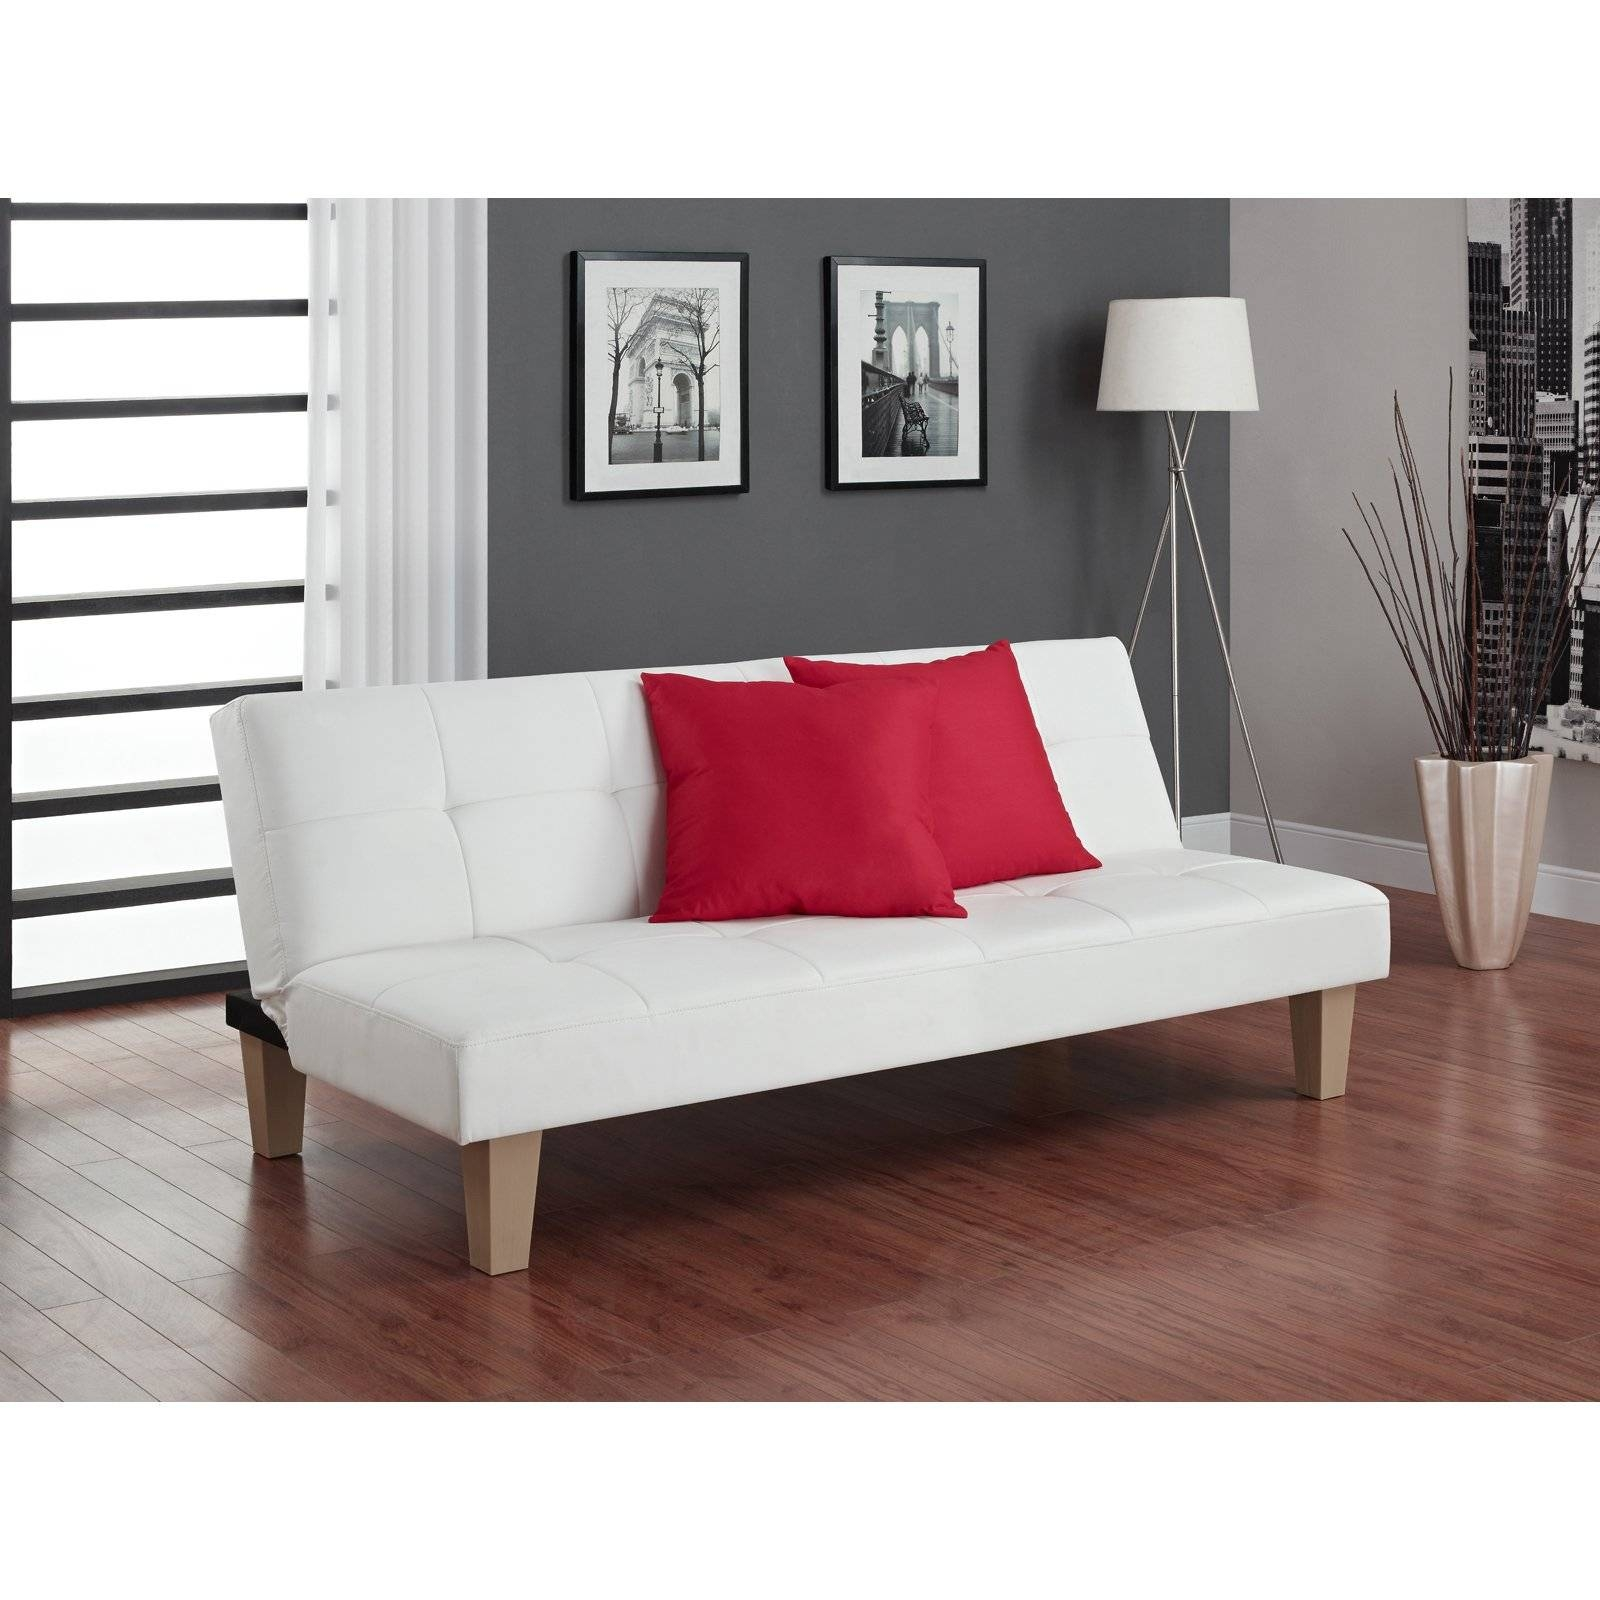 Sofa: Sofa Bed Covers Walmart | Futon Value City | Walmart Sofa Bed Intended For City Sofa Beds (View 26 of 30)